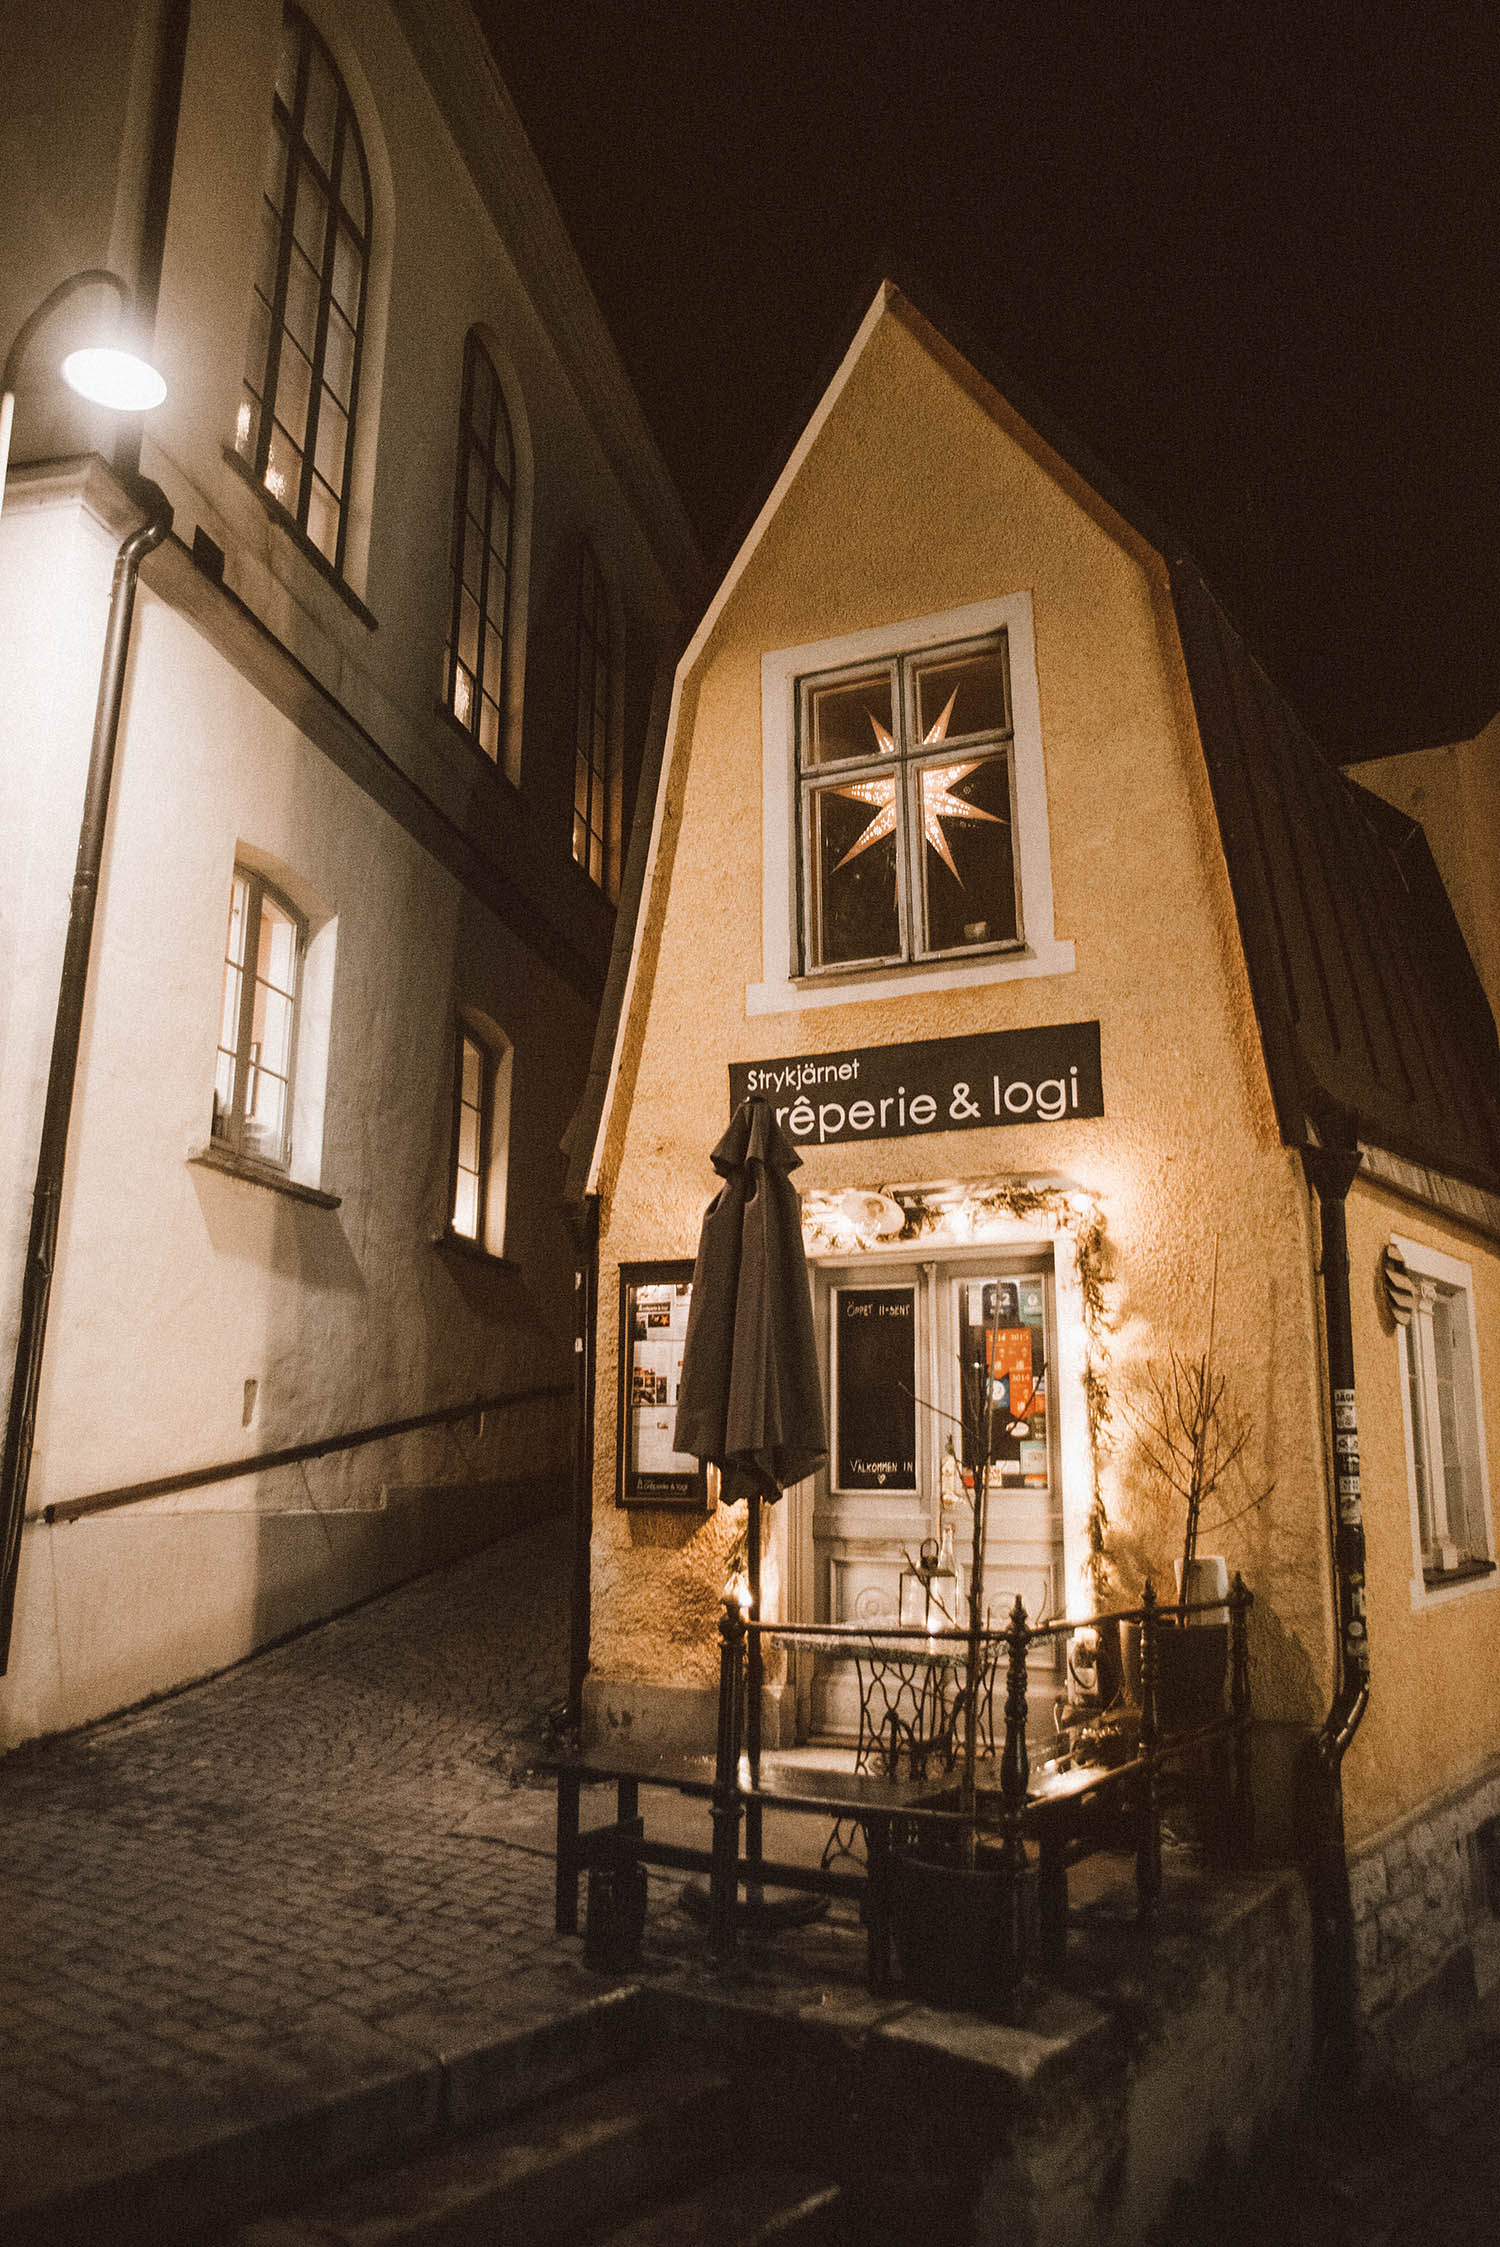 Cute house and cozy street in Visby